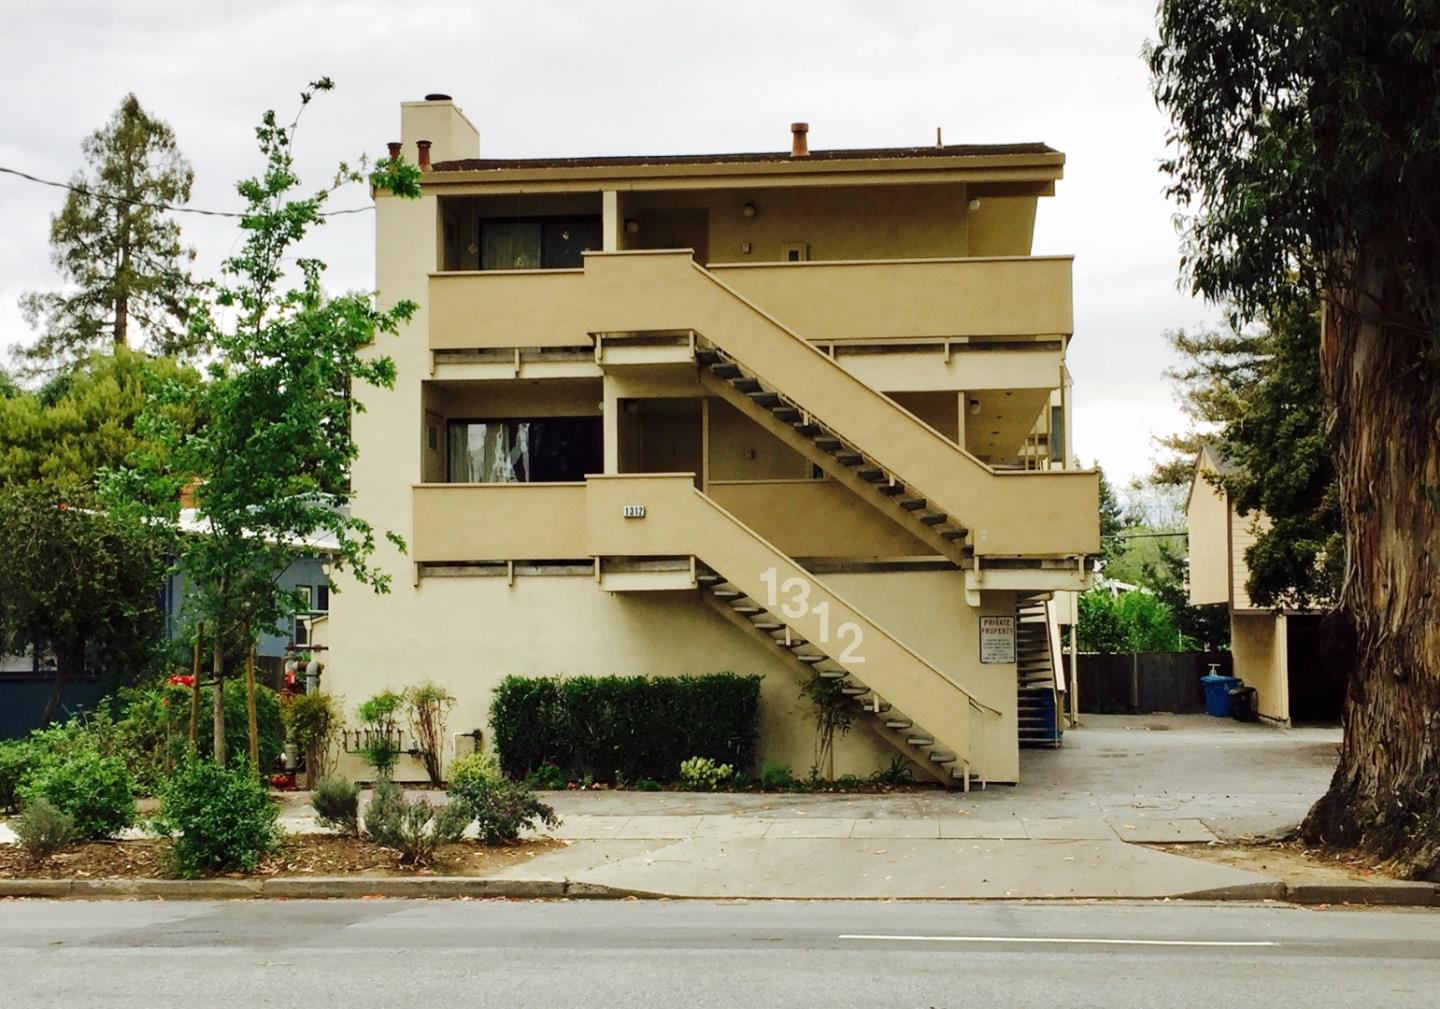 Multi-Family Home for Sale at 1312 El Camino Real Burlingame, California 94010 United States